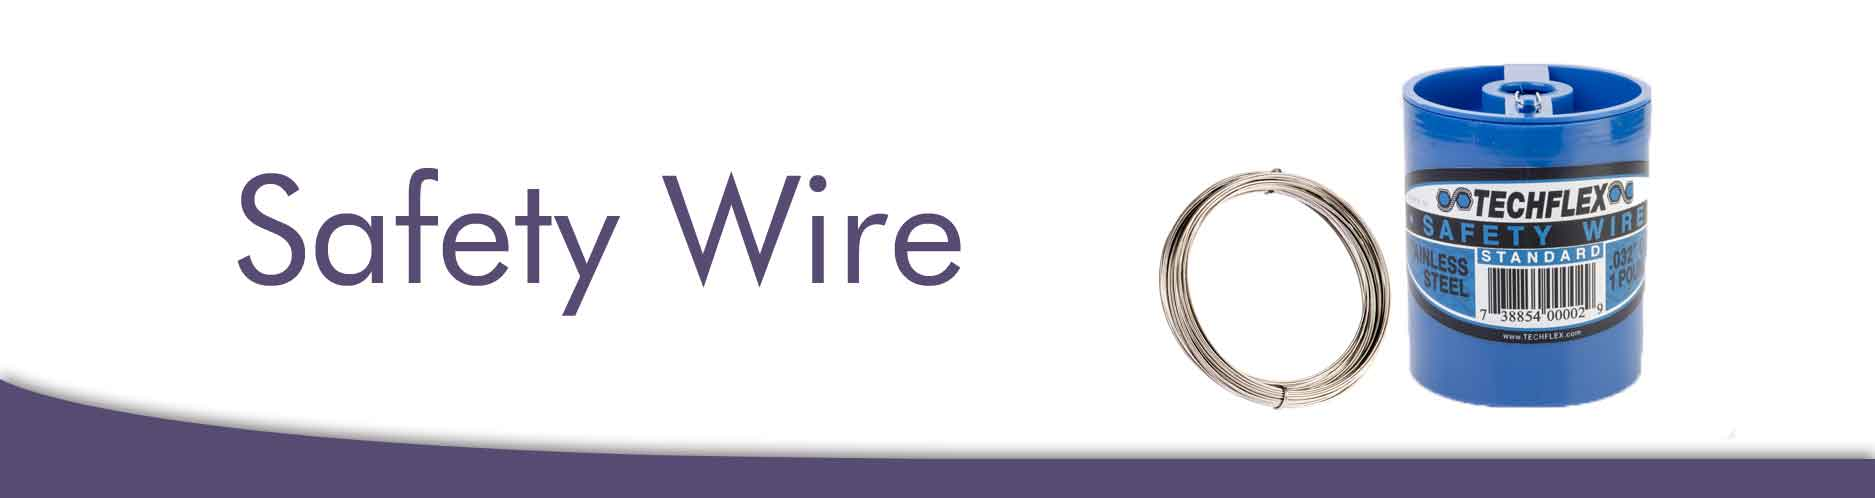 Safety Wire